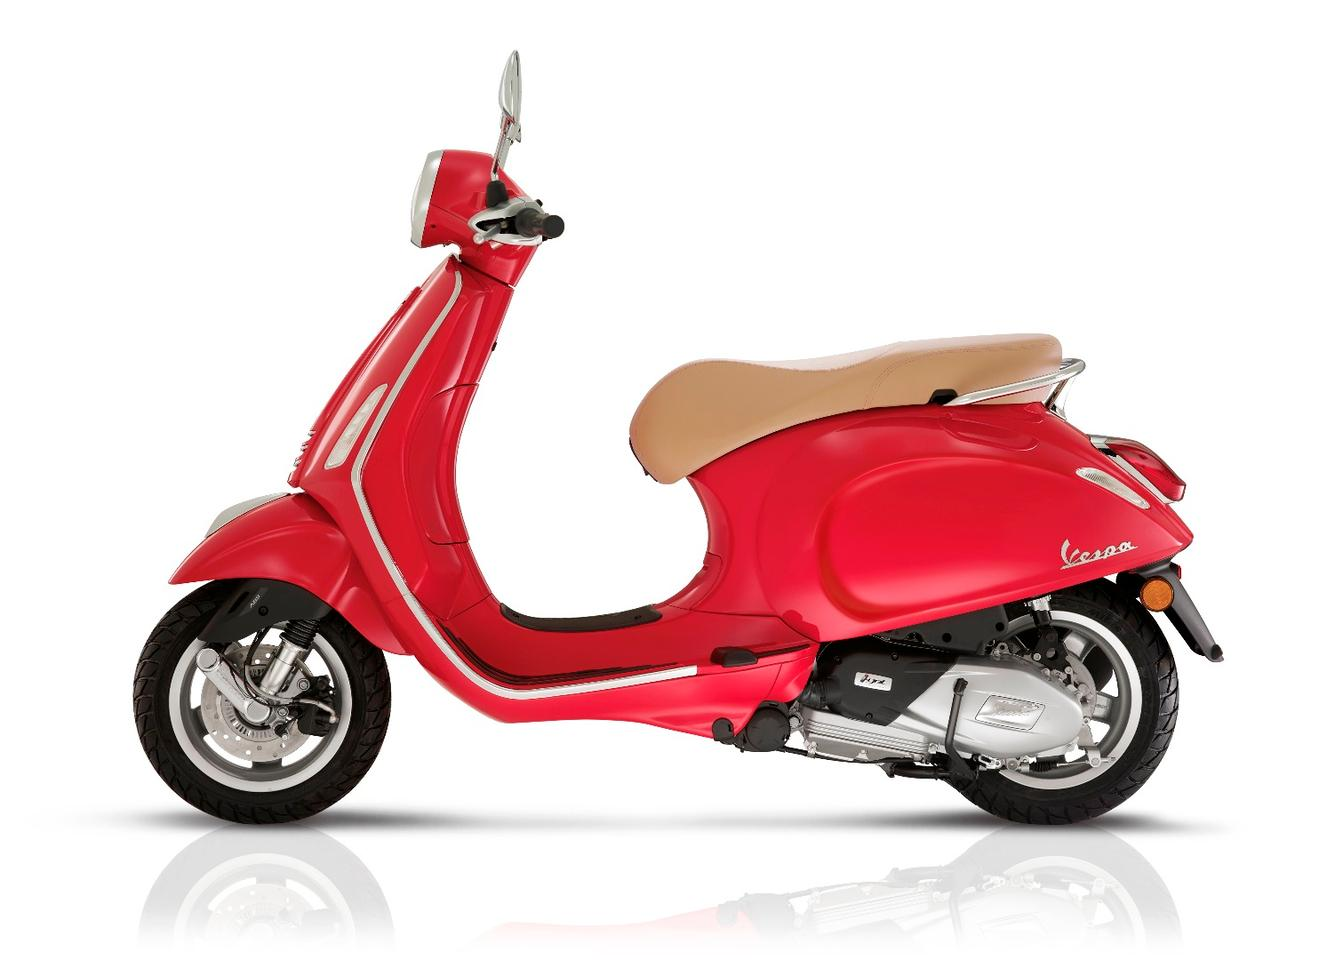 The Vespa Primavera comes in an array of colors with the red evoking the most Italian look available